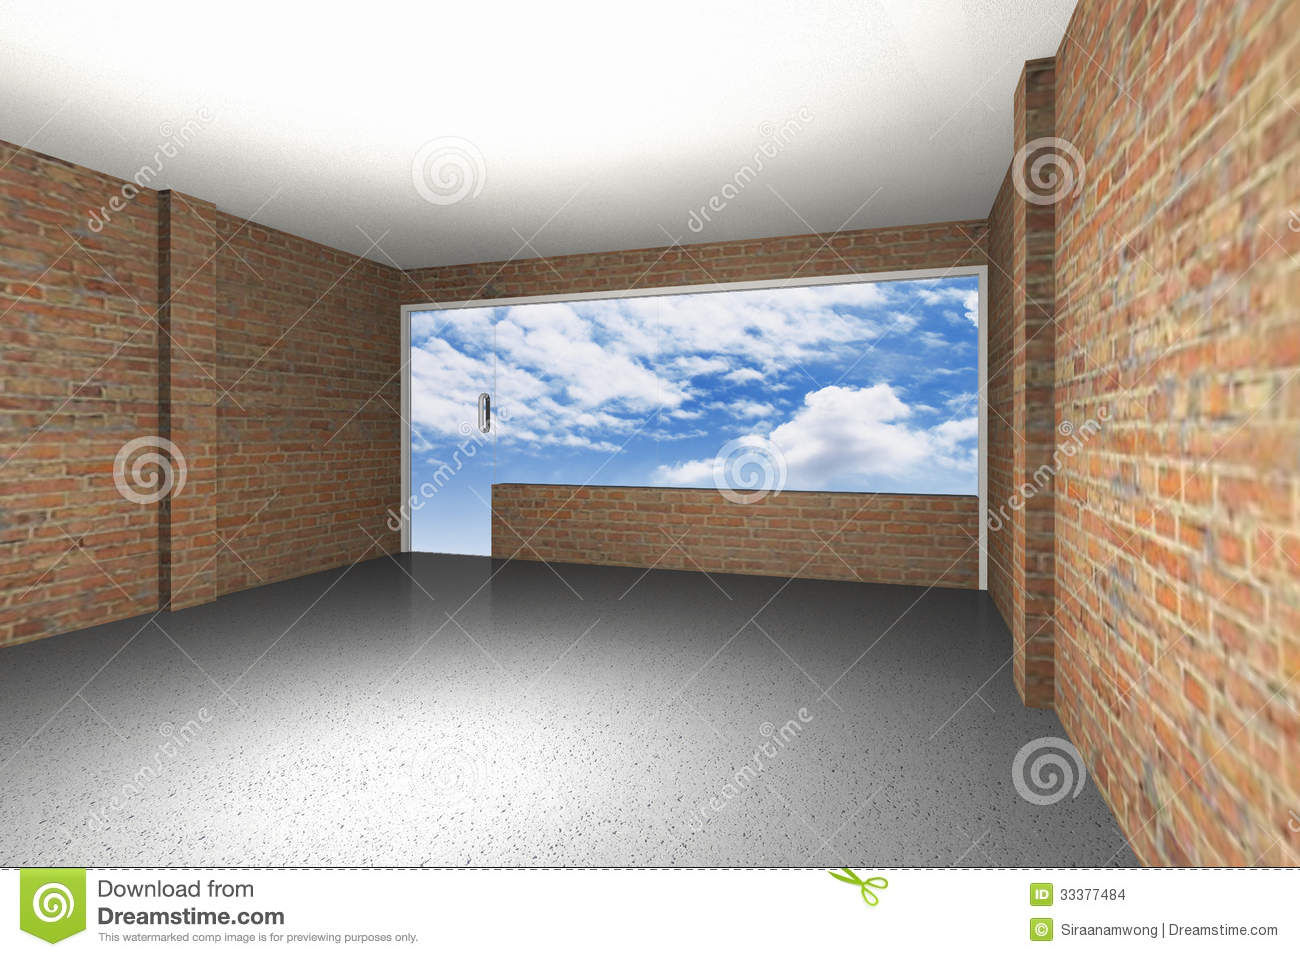 Laterite stone brick wall stock images image 35510874 - Laterite Stone Brick Wall Stock Images Image 35510874 White Brick Wall Background Room Wall Background Empty Room With Brick Wall